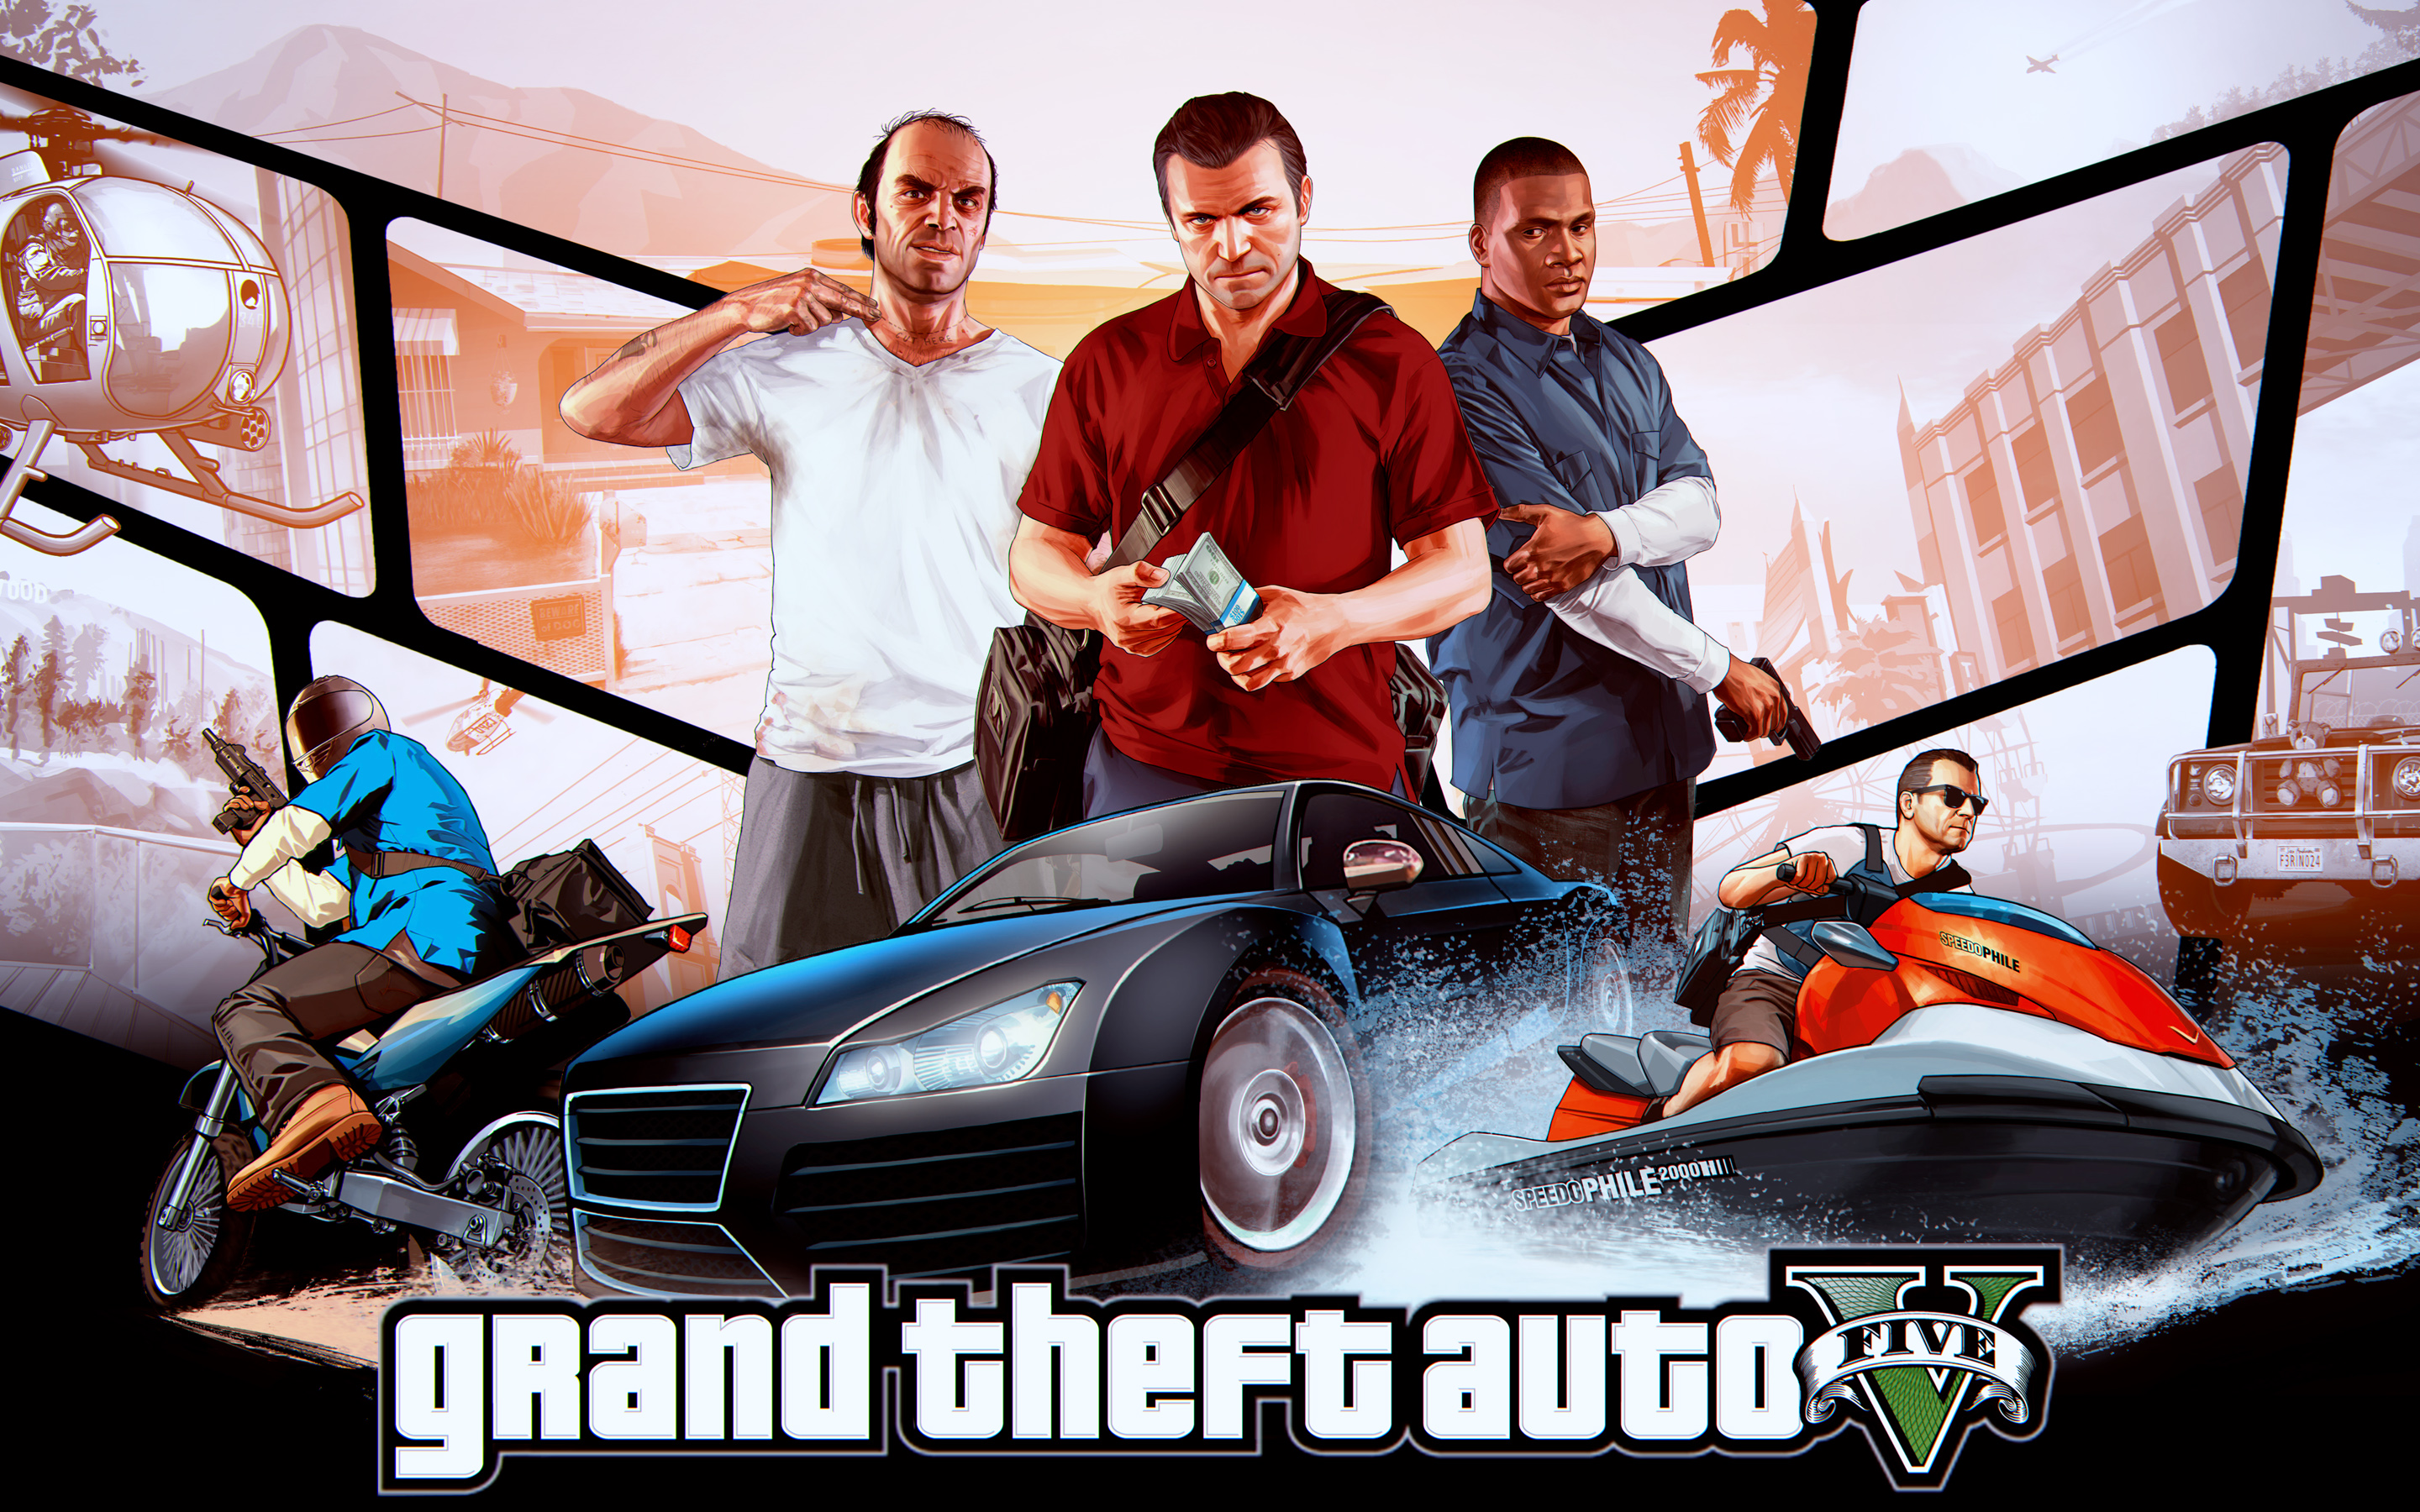 gr theft auto v wallpapers | wallpapers hd